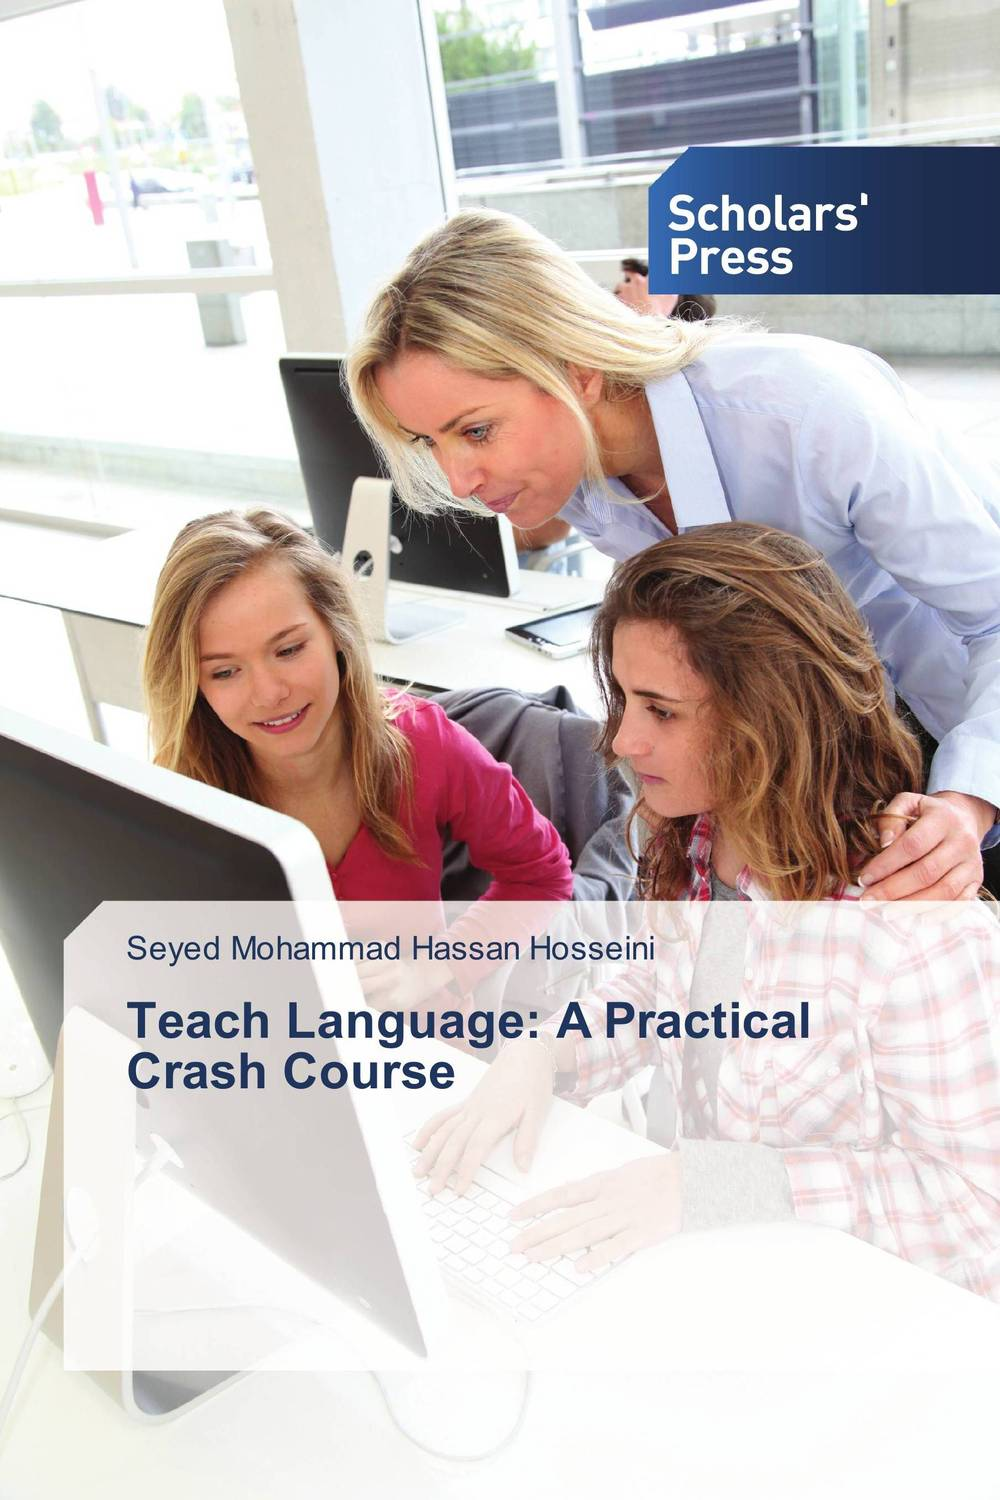 Teach Language: A Practical Crash Course david wiedemer the aftershock investor a crash course in staying afloat in a sinking economy